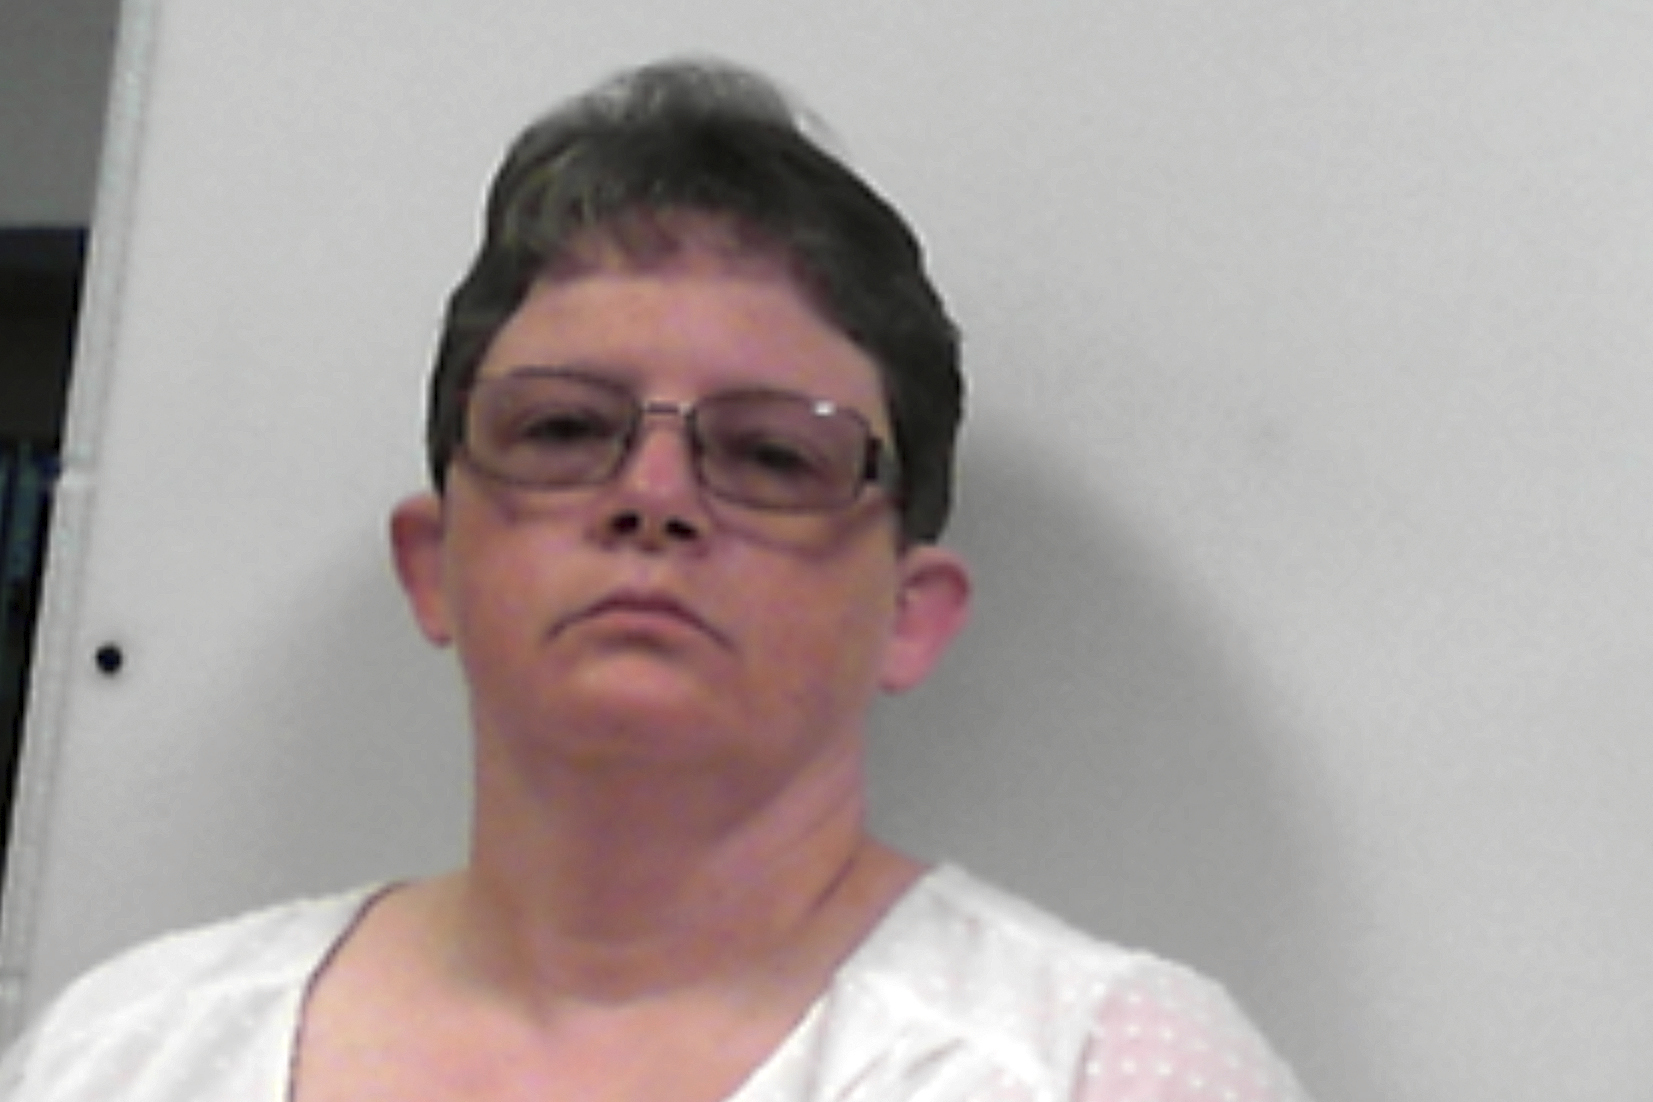 This photo released by the West Virginia Regional Jail and Correctional Facility Authority shows Reta Mays, a former nursing assistant at the Louis A. Johnson VA Medical Center in Clarksburg, W.Va.